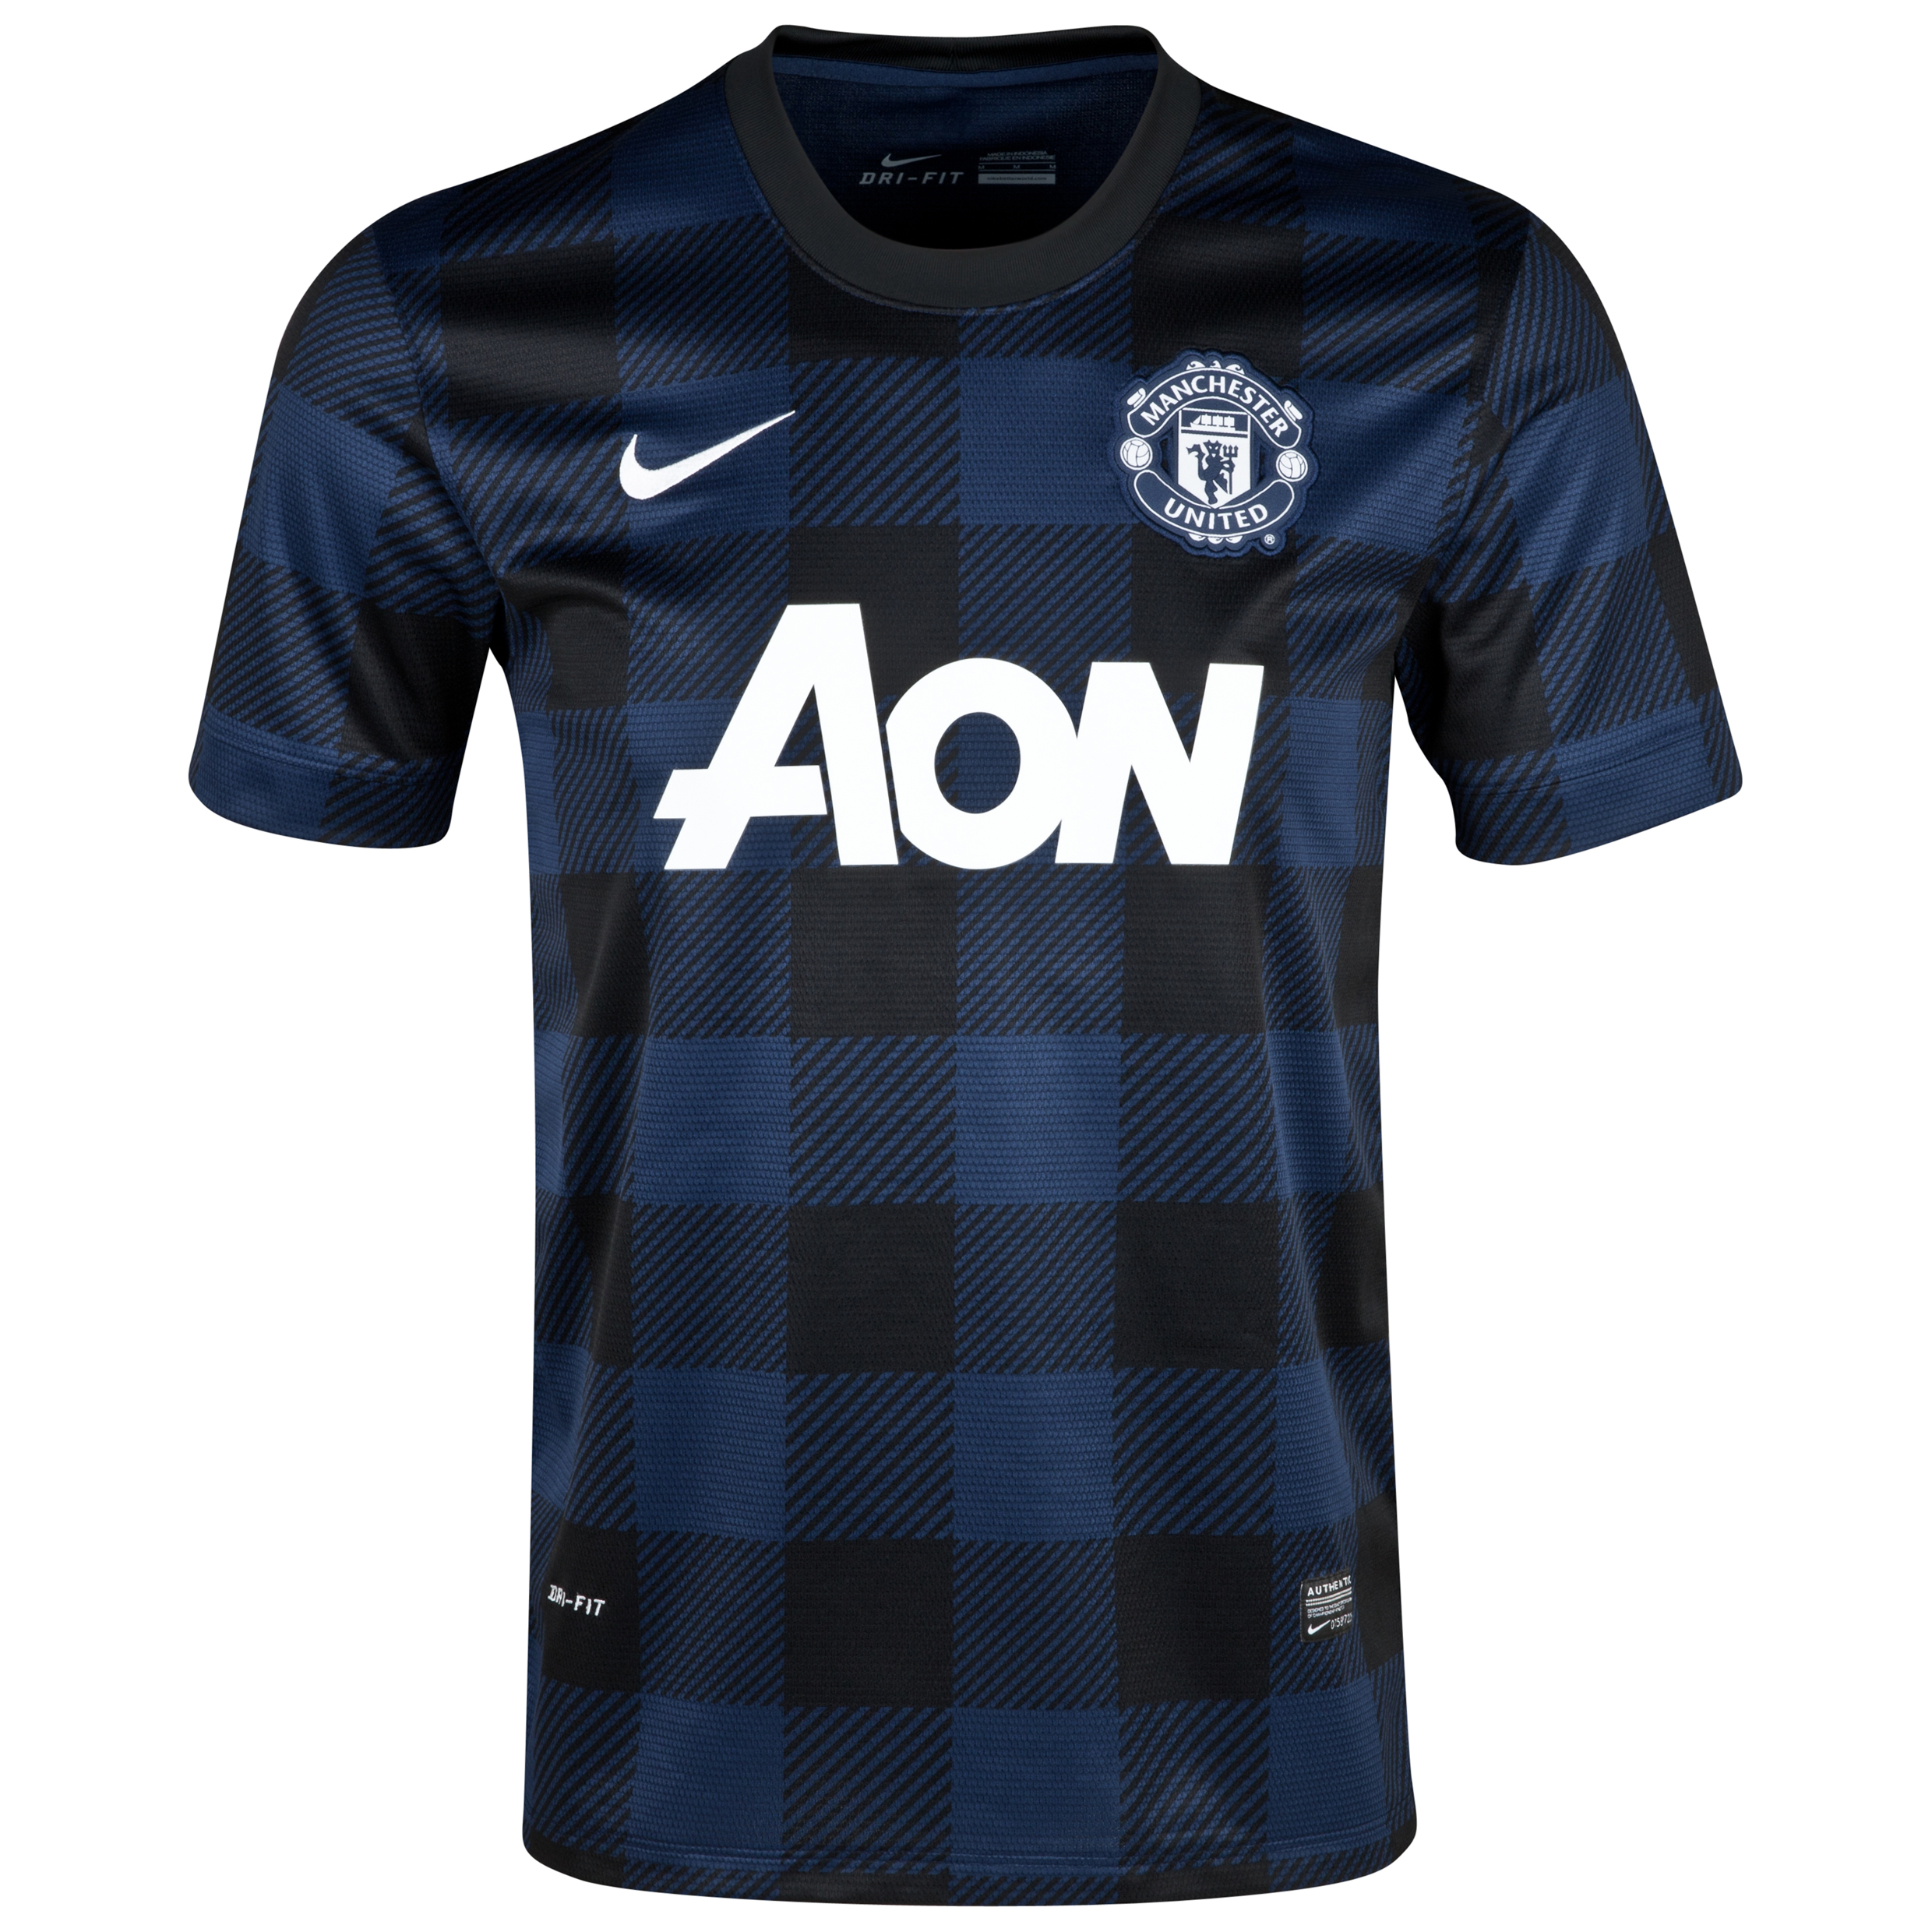 League champions Manchester United have unveiled their new away kit    Manchester United 2014 Away Kit